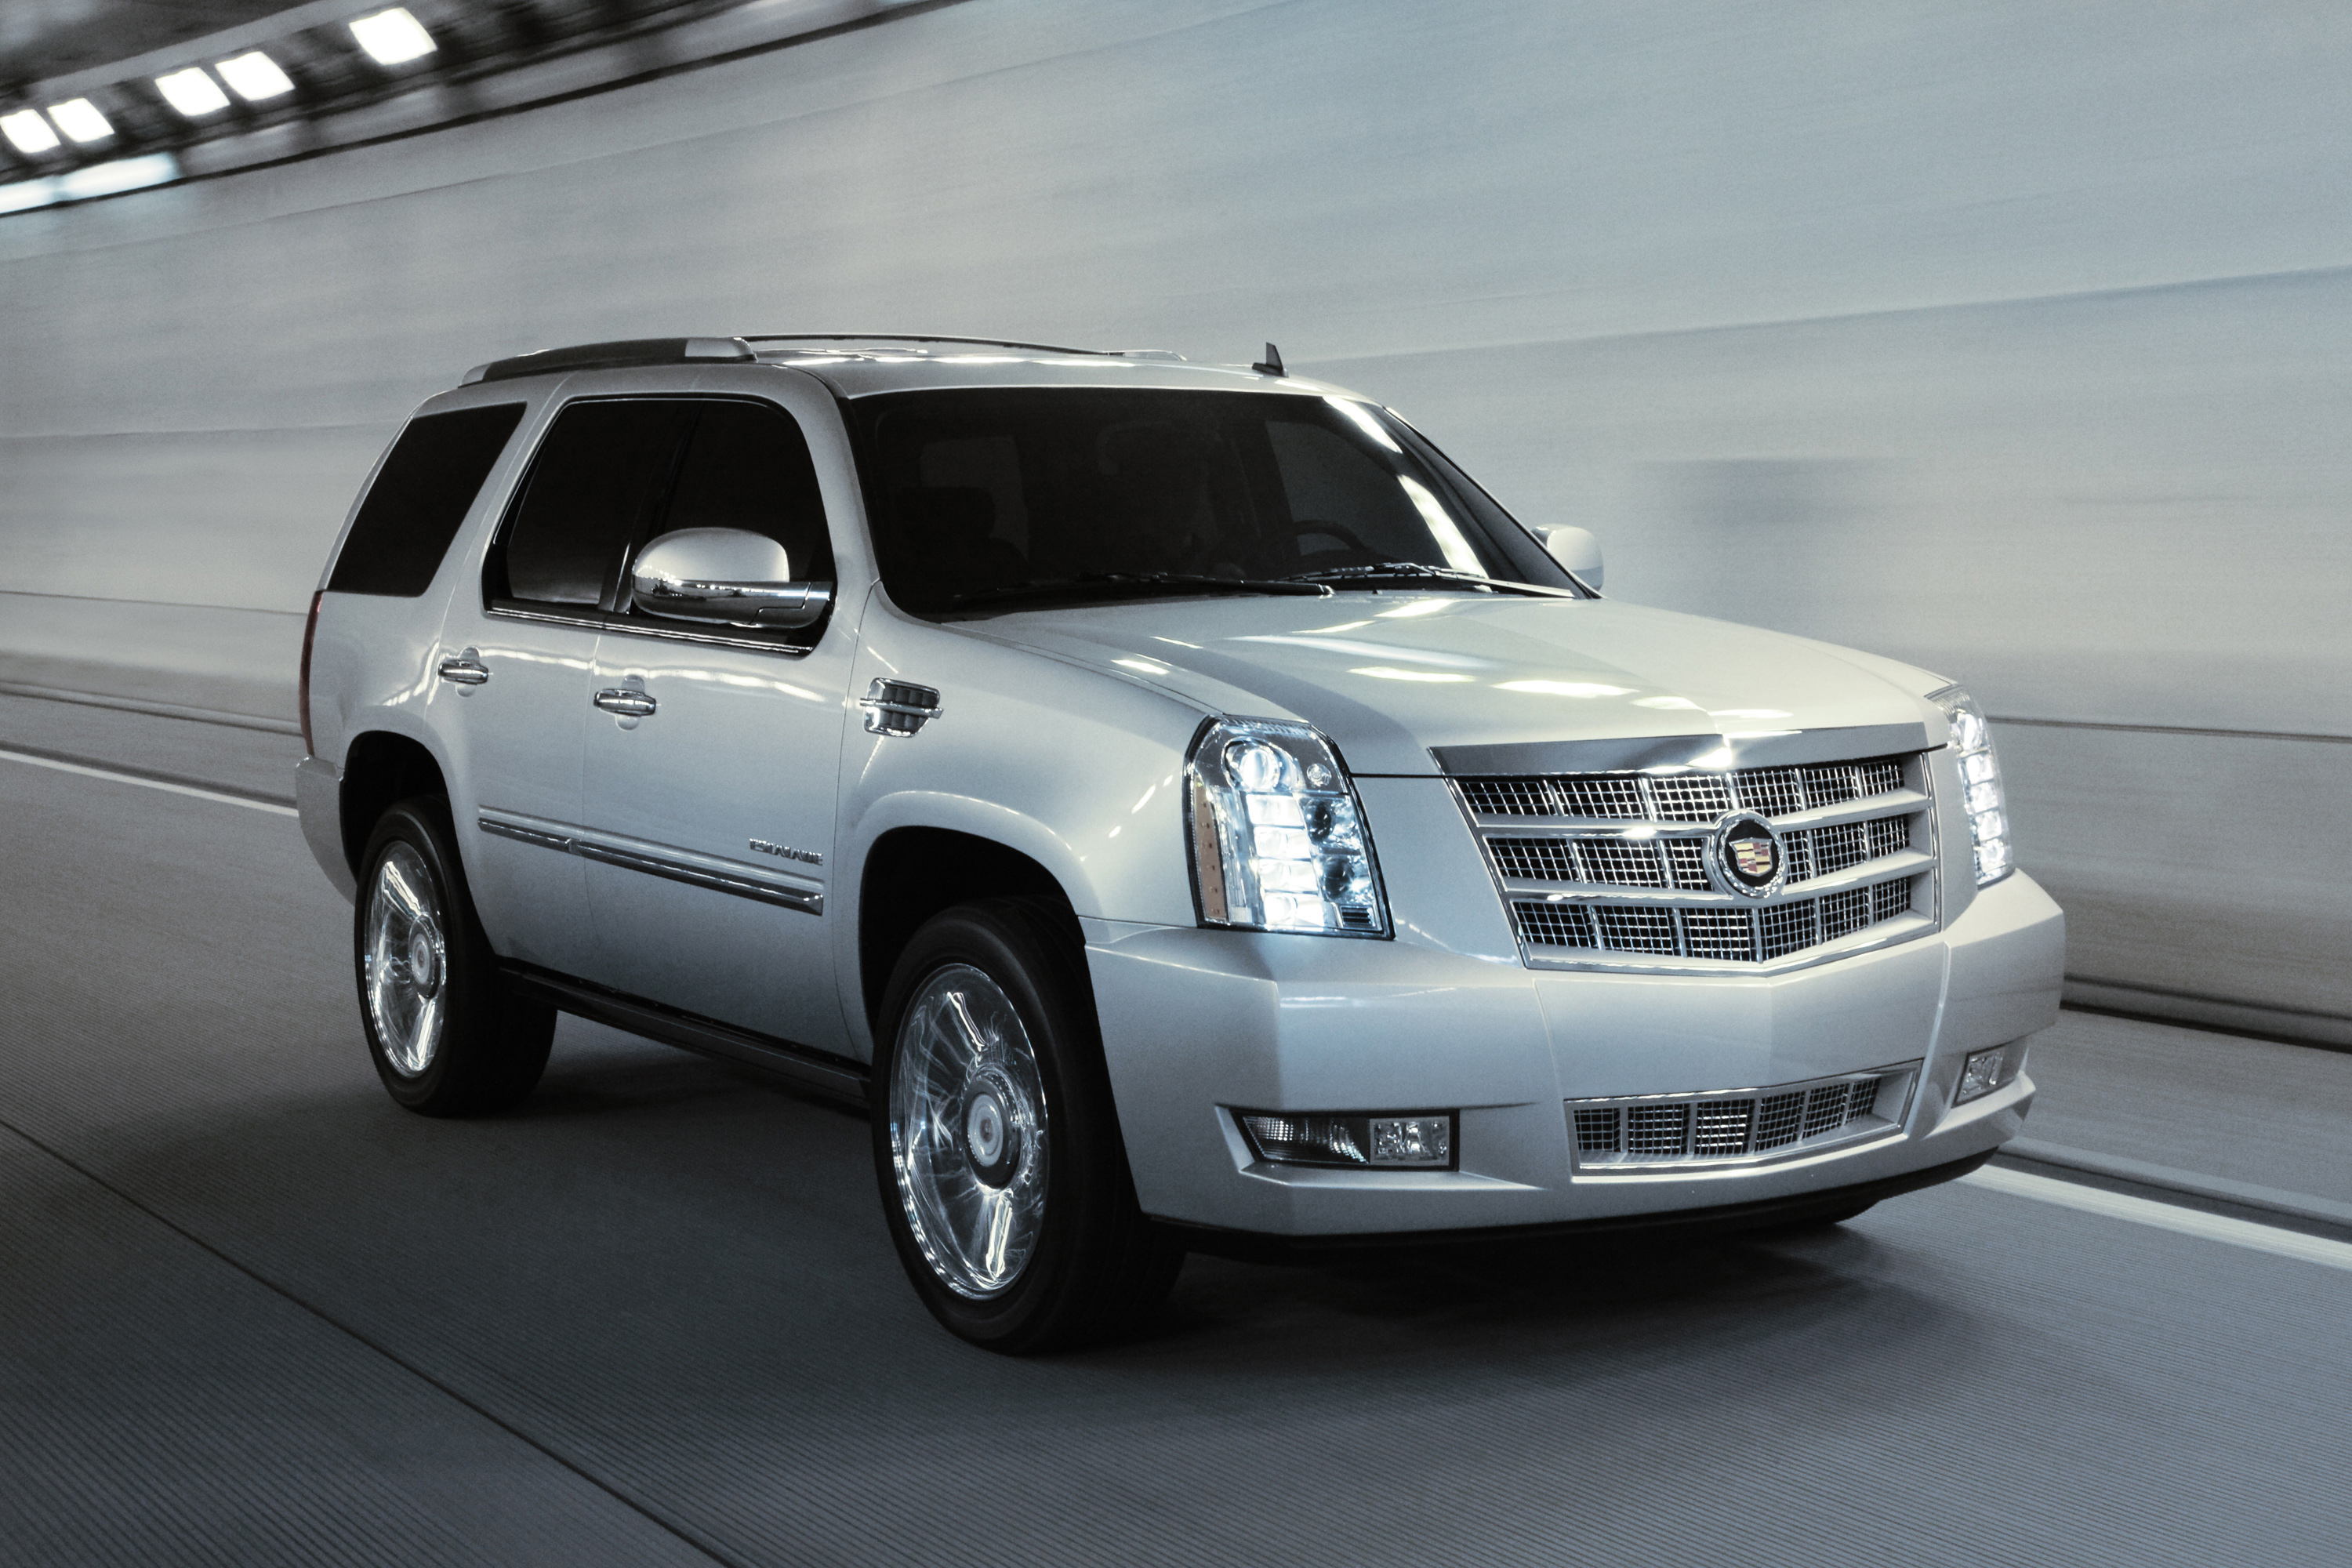 cadillac escalade gone in 14 seconds w video road reality. Black Bedroom Furniture Sets. Home Design Ideas